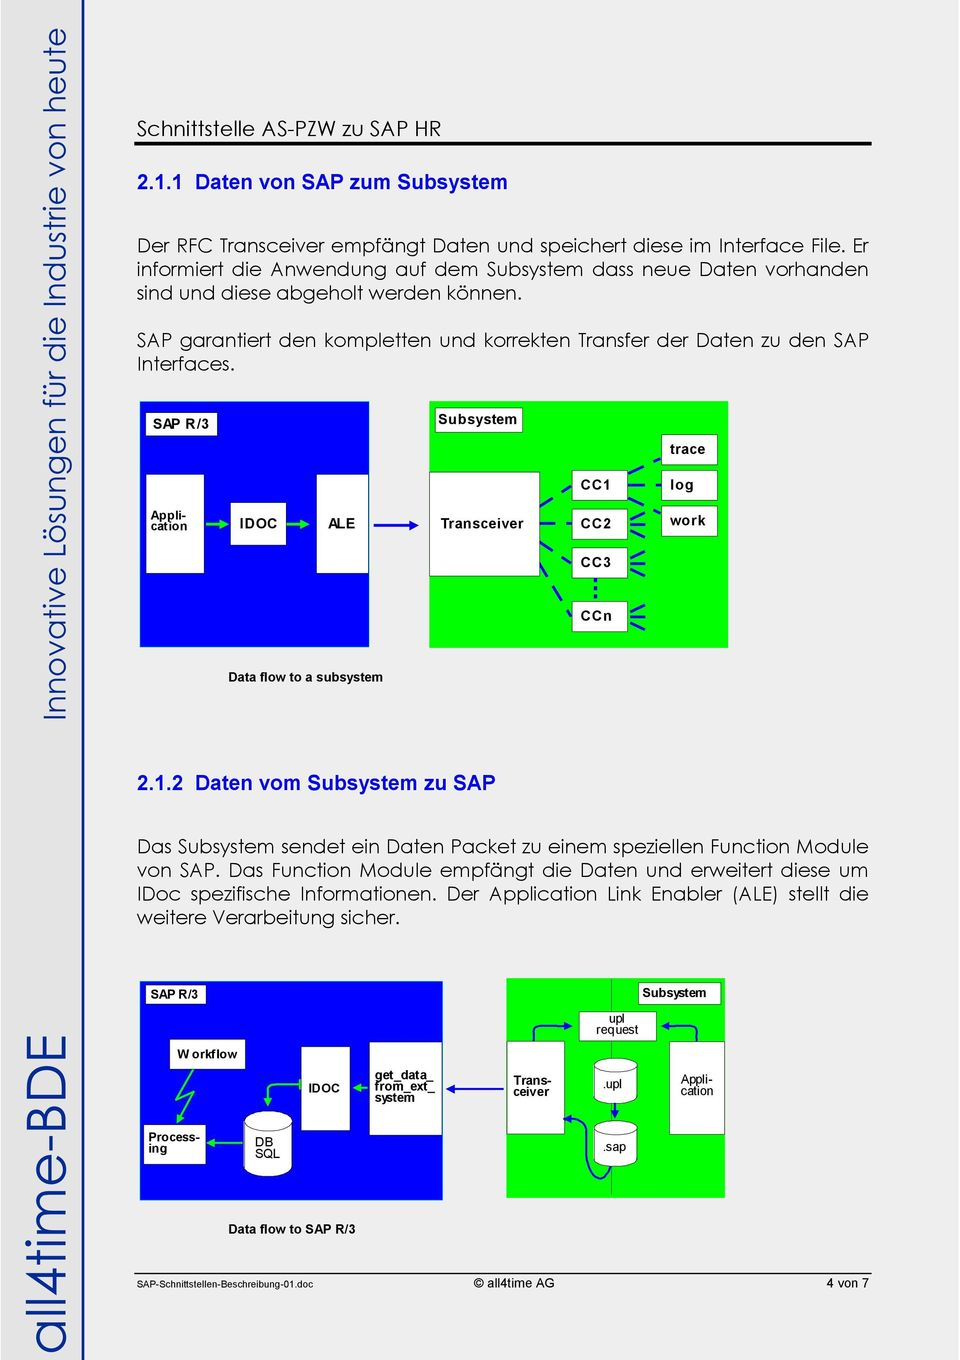 SAP R/3 R/3-Basis IDOC TCP/IP ALE CPI - C Data flow to a subsystem Subsystem Transceiver 2.1.